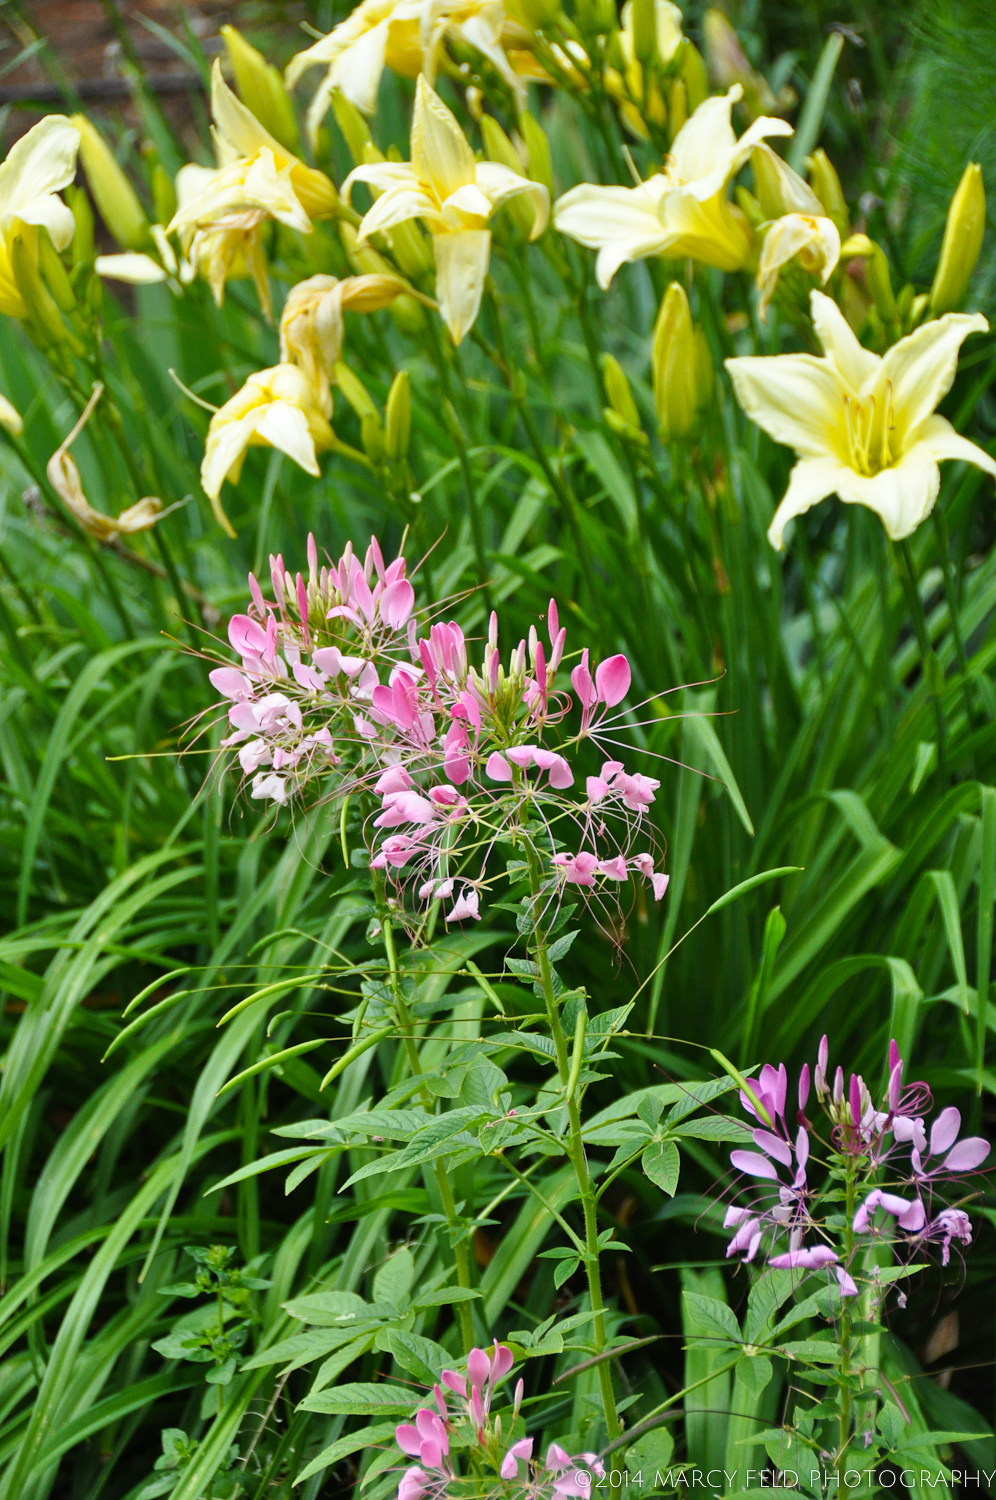 Cleome Hassleriana or Spider Flower with Lemon Day Lilies